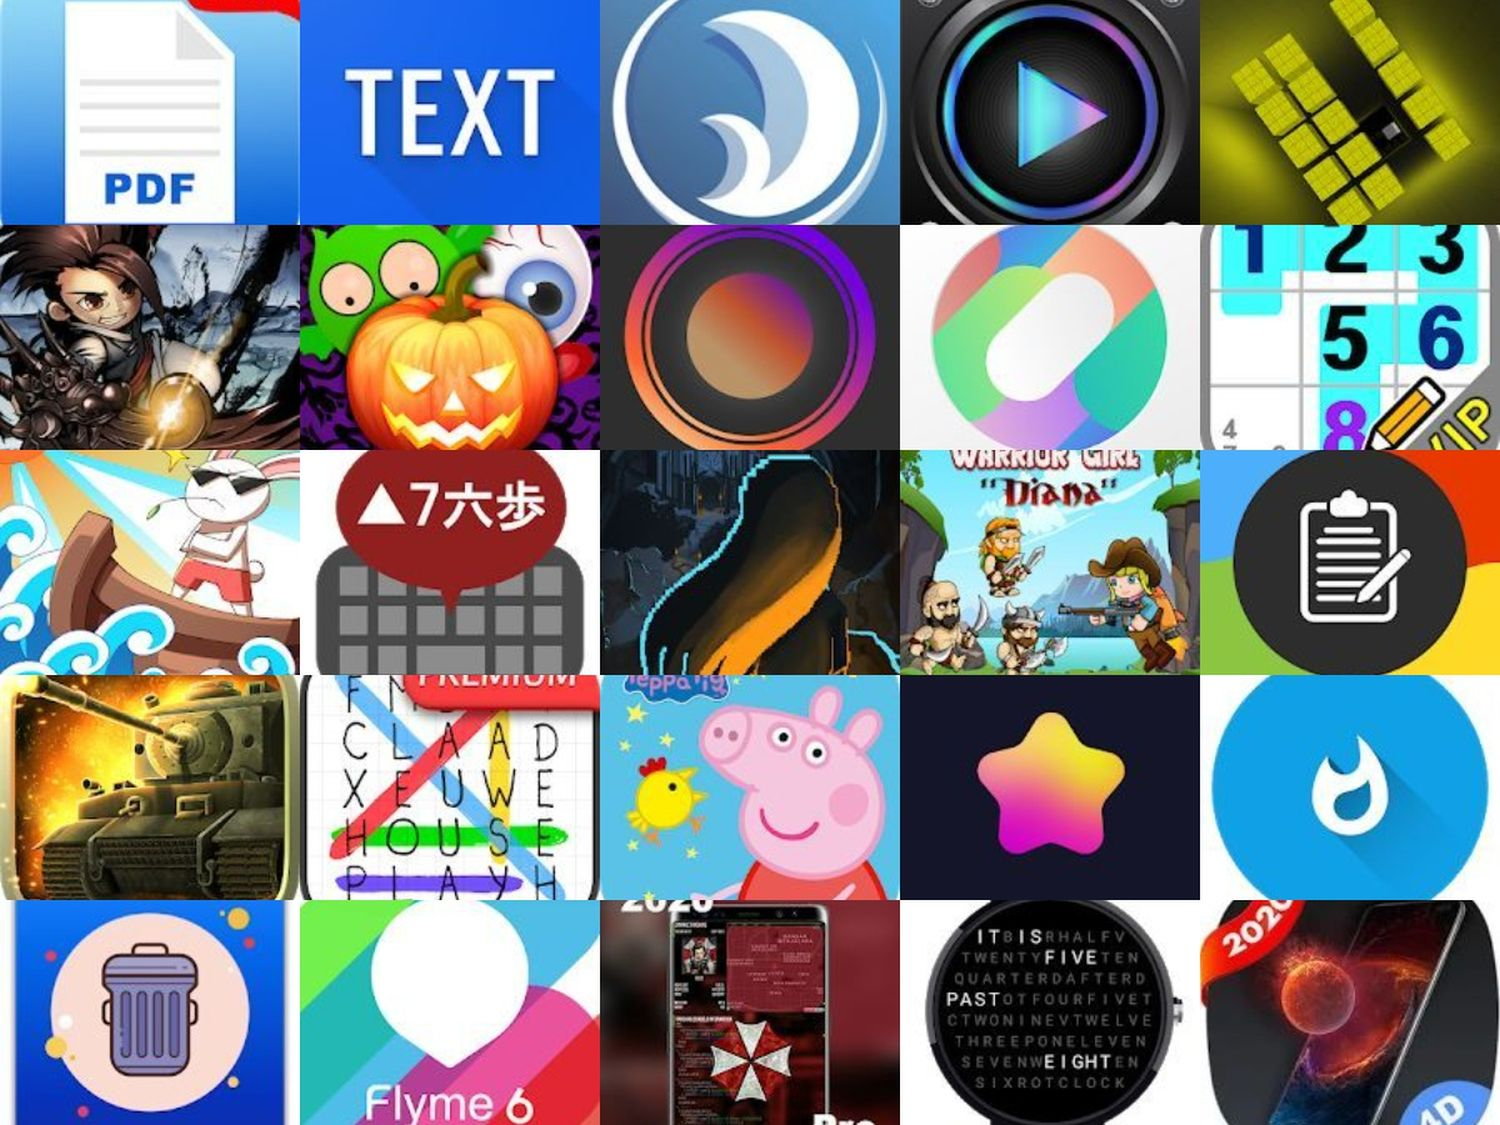 apps 09.06.2020